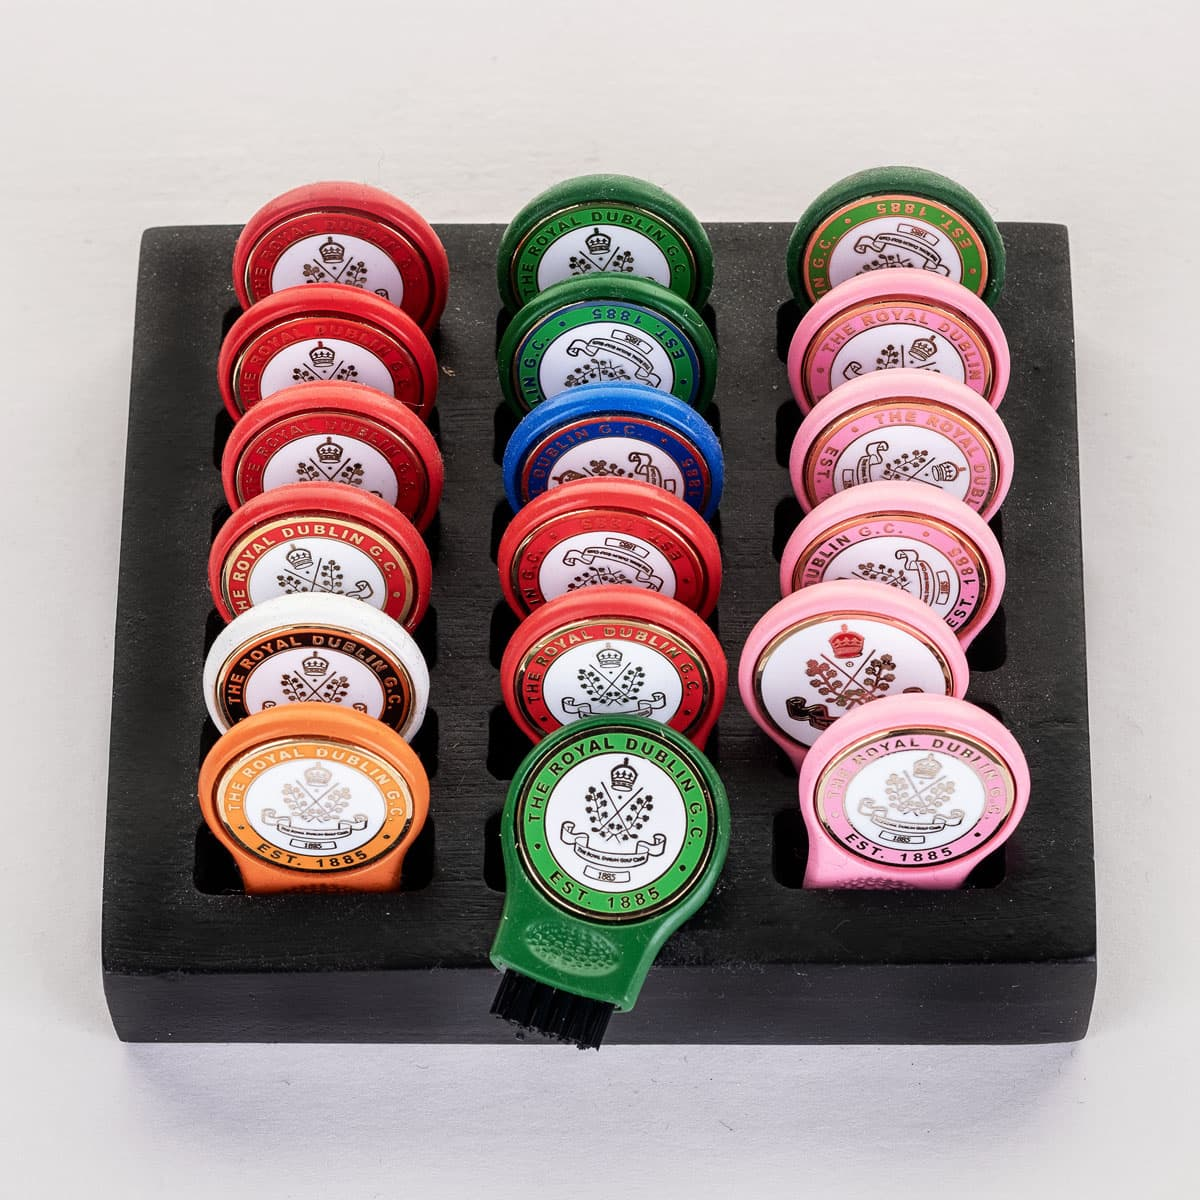 Groove brush with ball marker €8.95 or 2 for €15